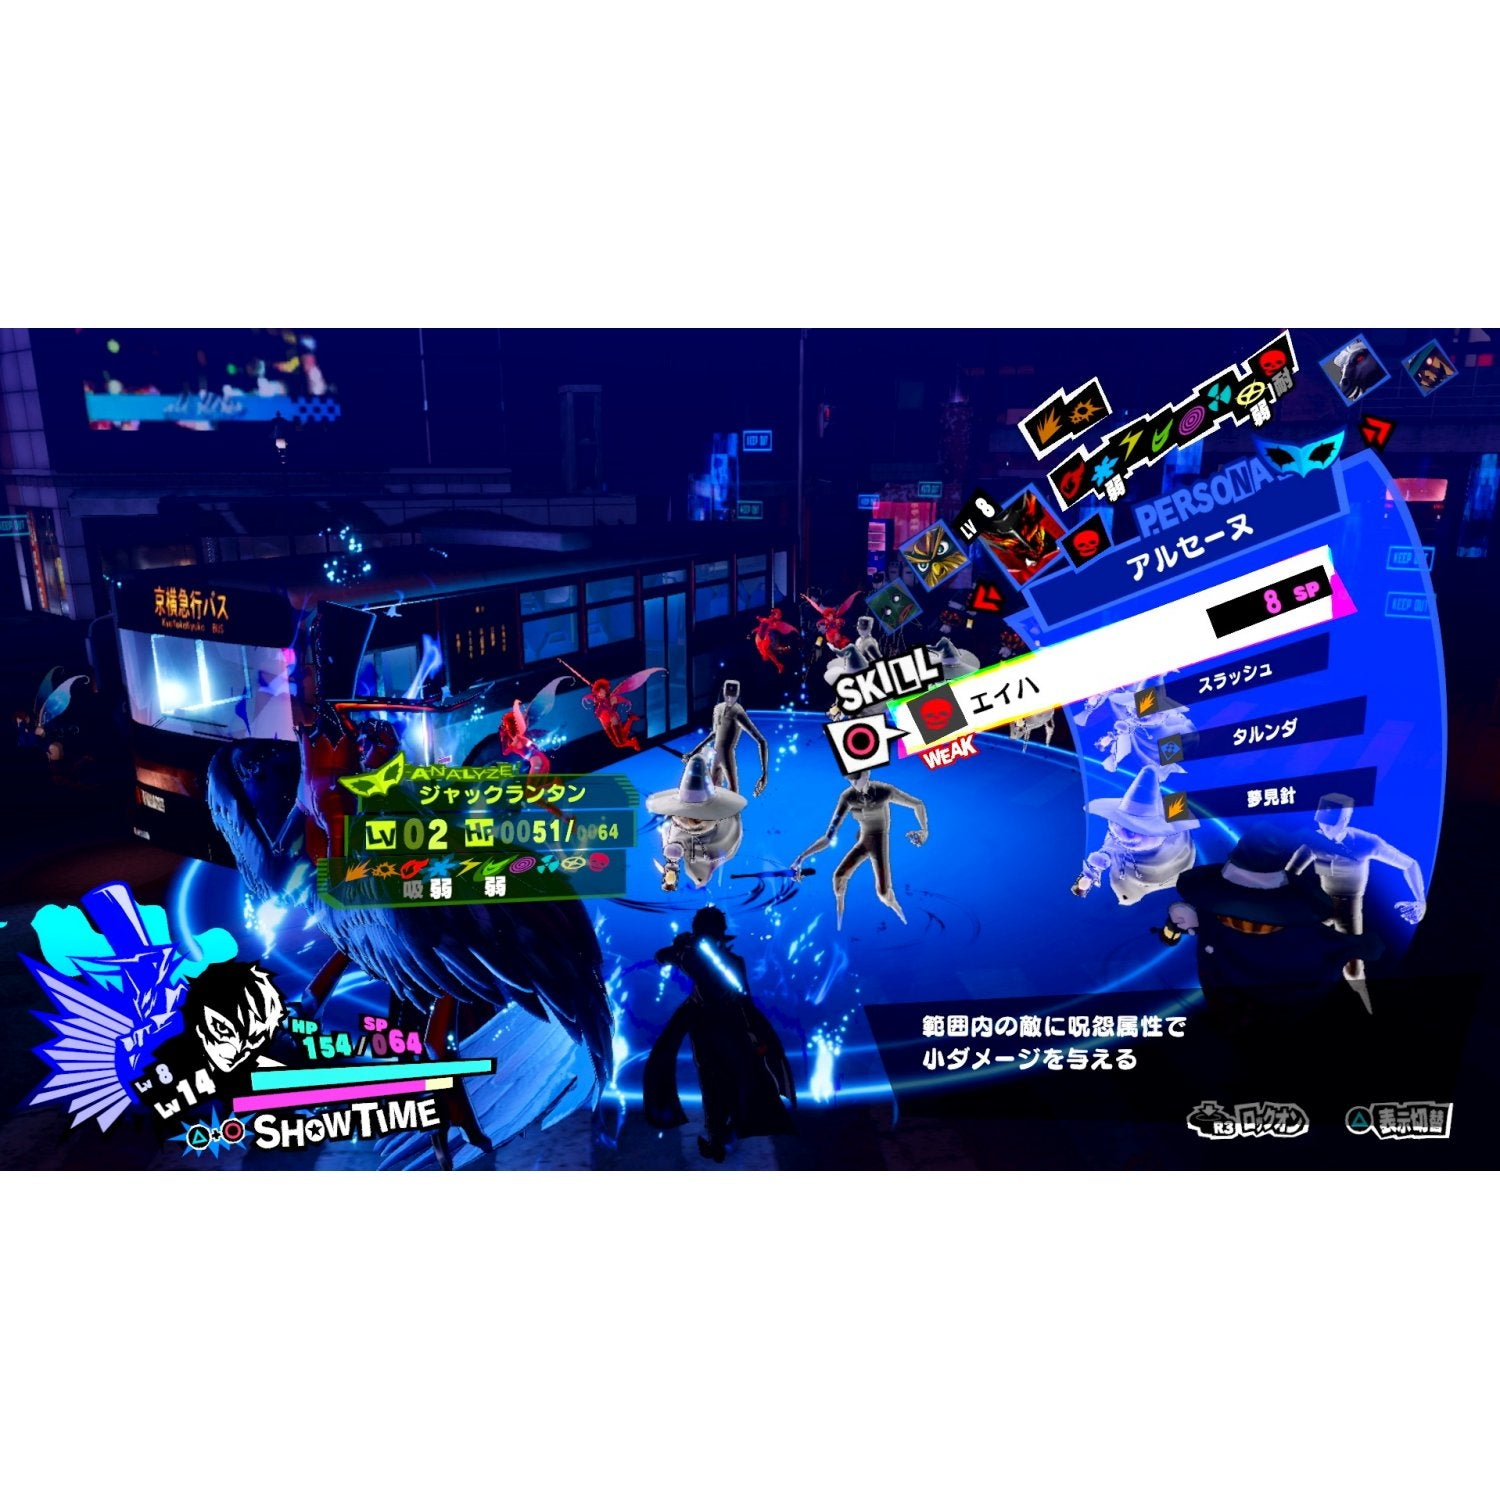 PS4 P5S: Persona 5 Strikers (NC16)